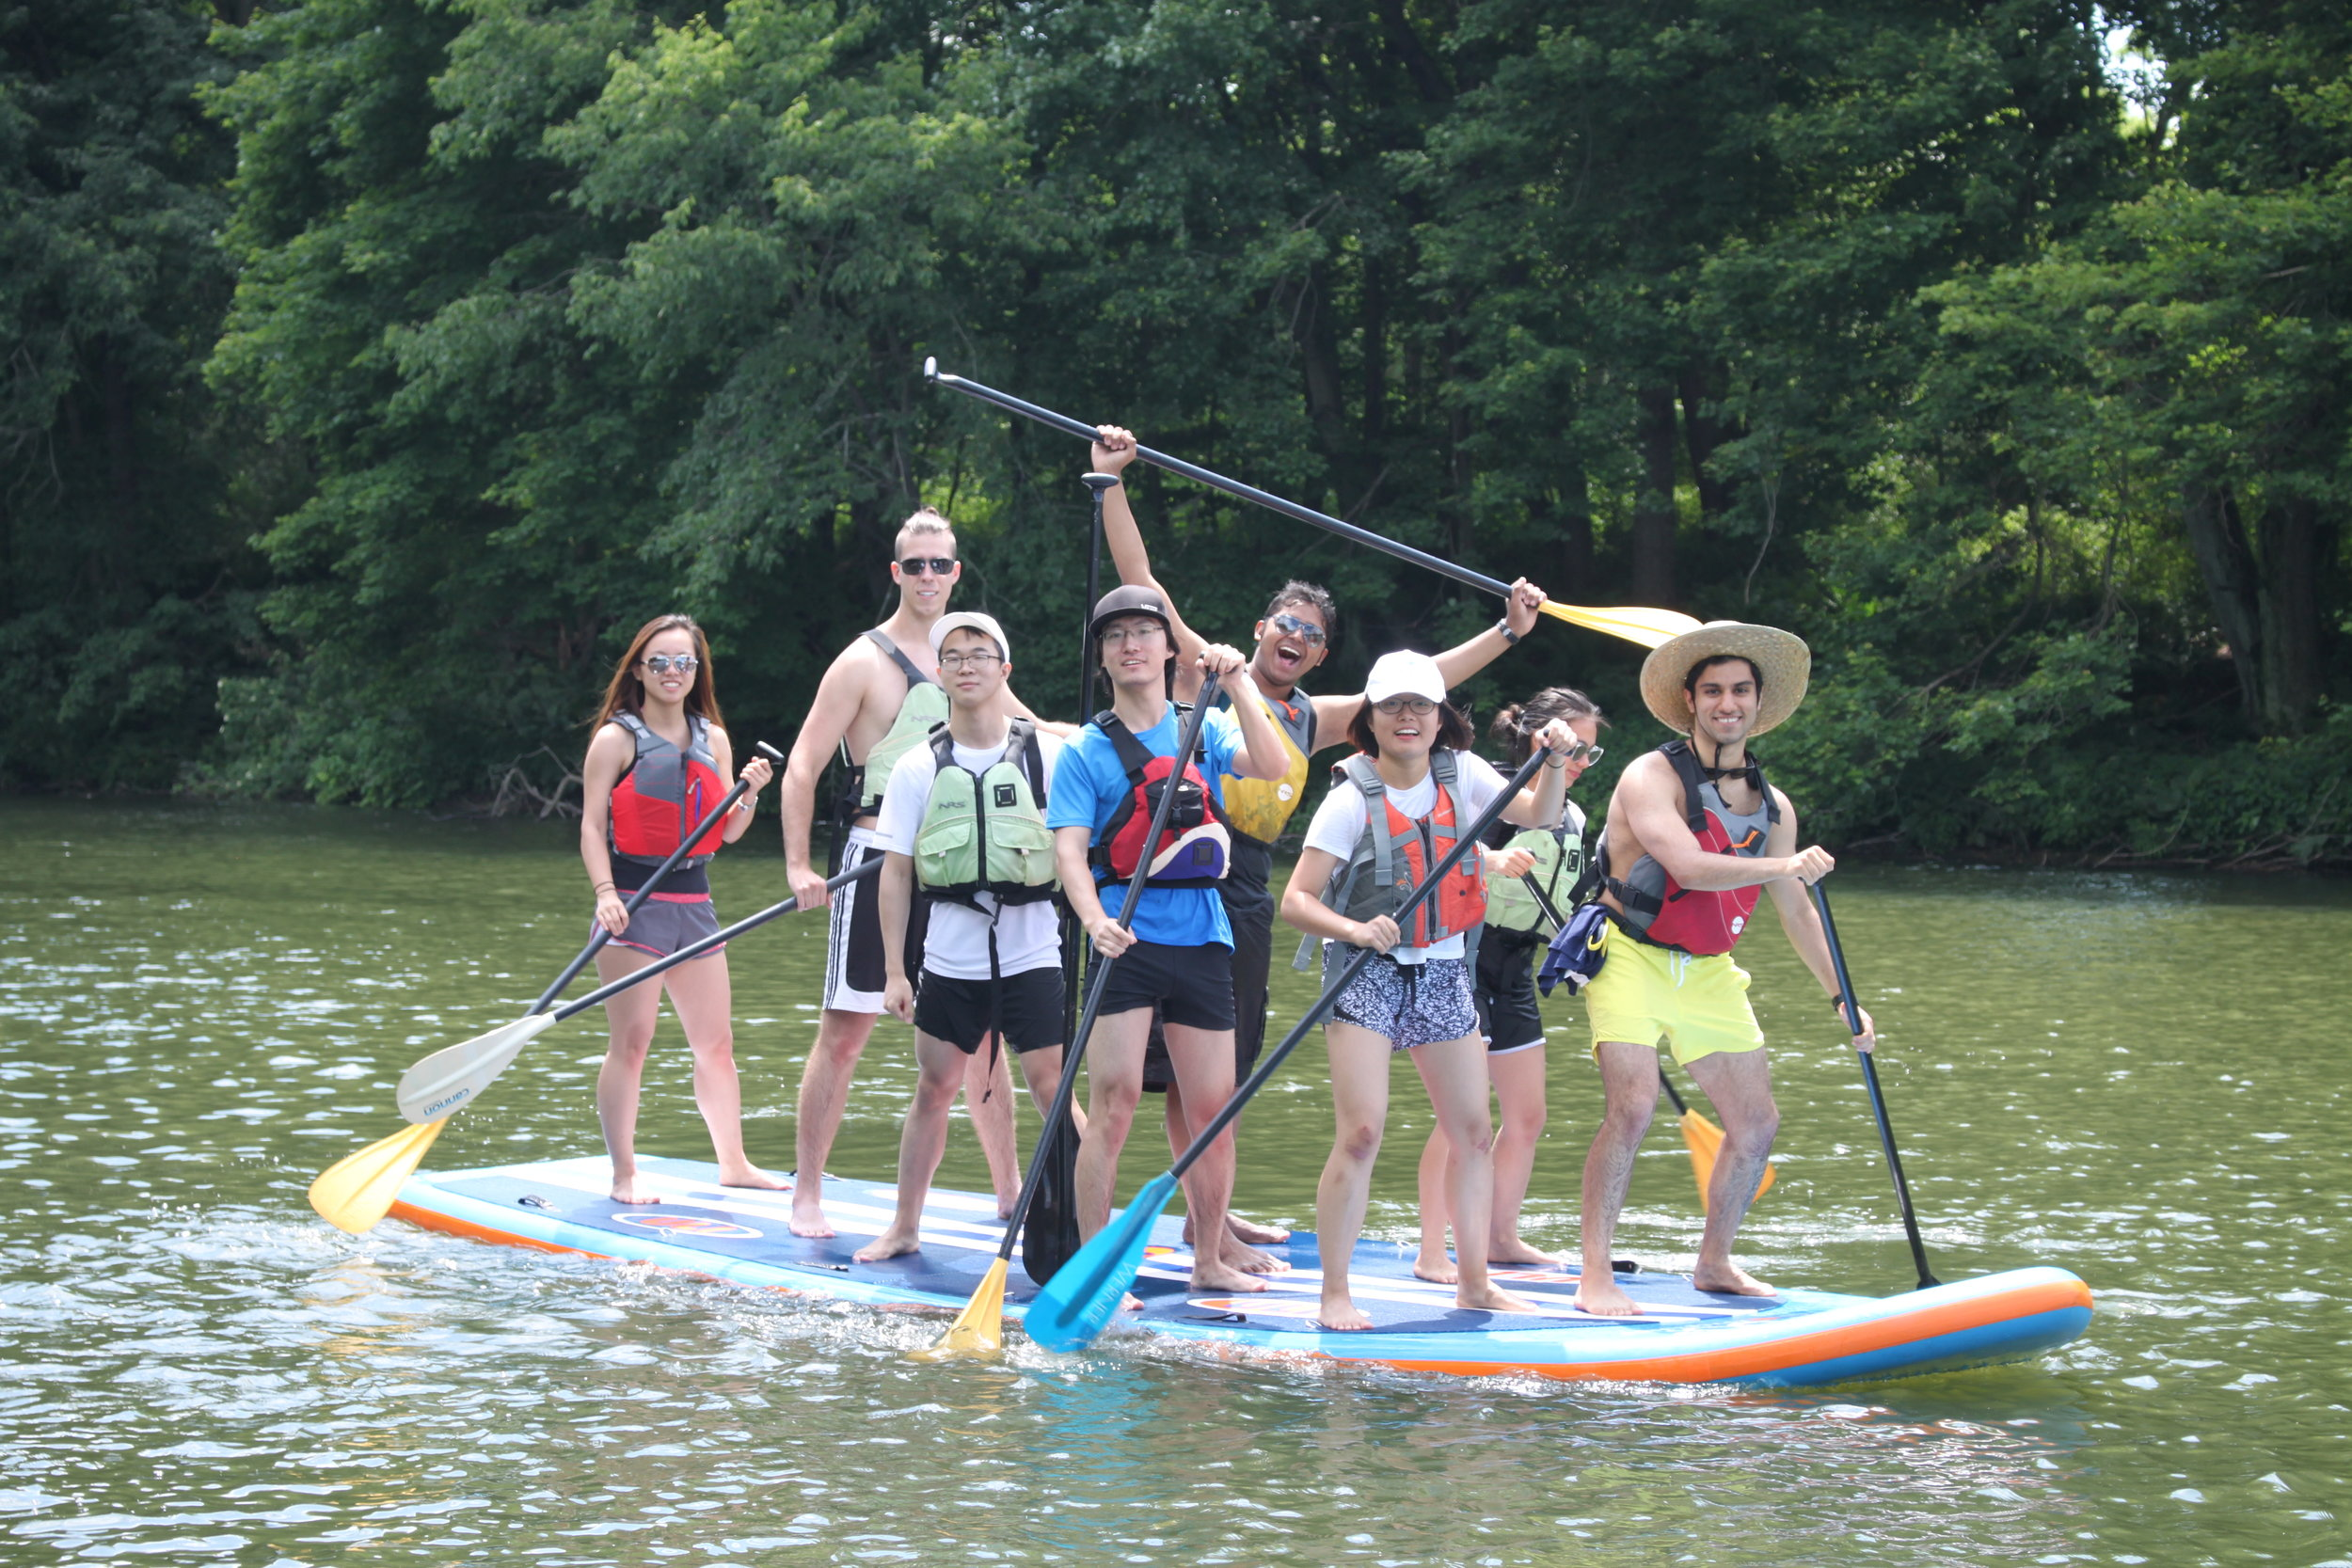 Group Fun! - We can accomodate your large groups for all ages. Perfect for corporate events, team-building, girl scouts and boy scouts, church activities, and more!